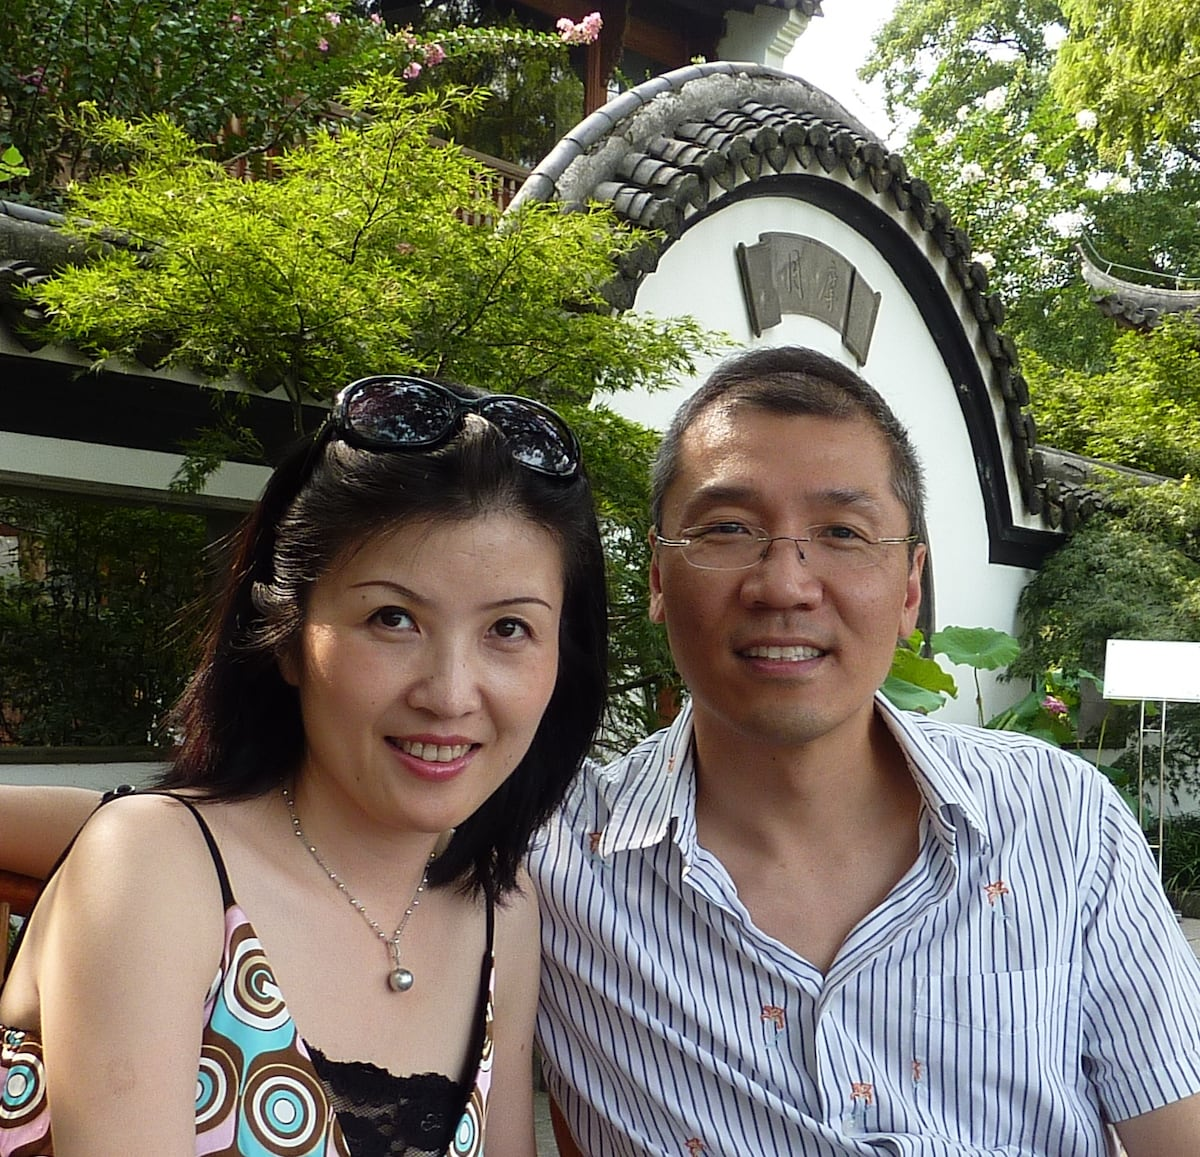 David & Lan from Hangzhou